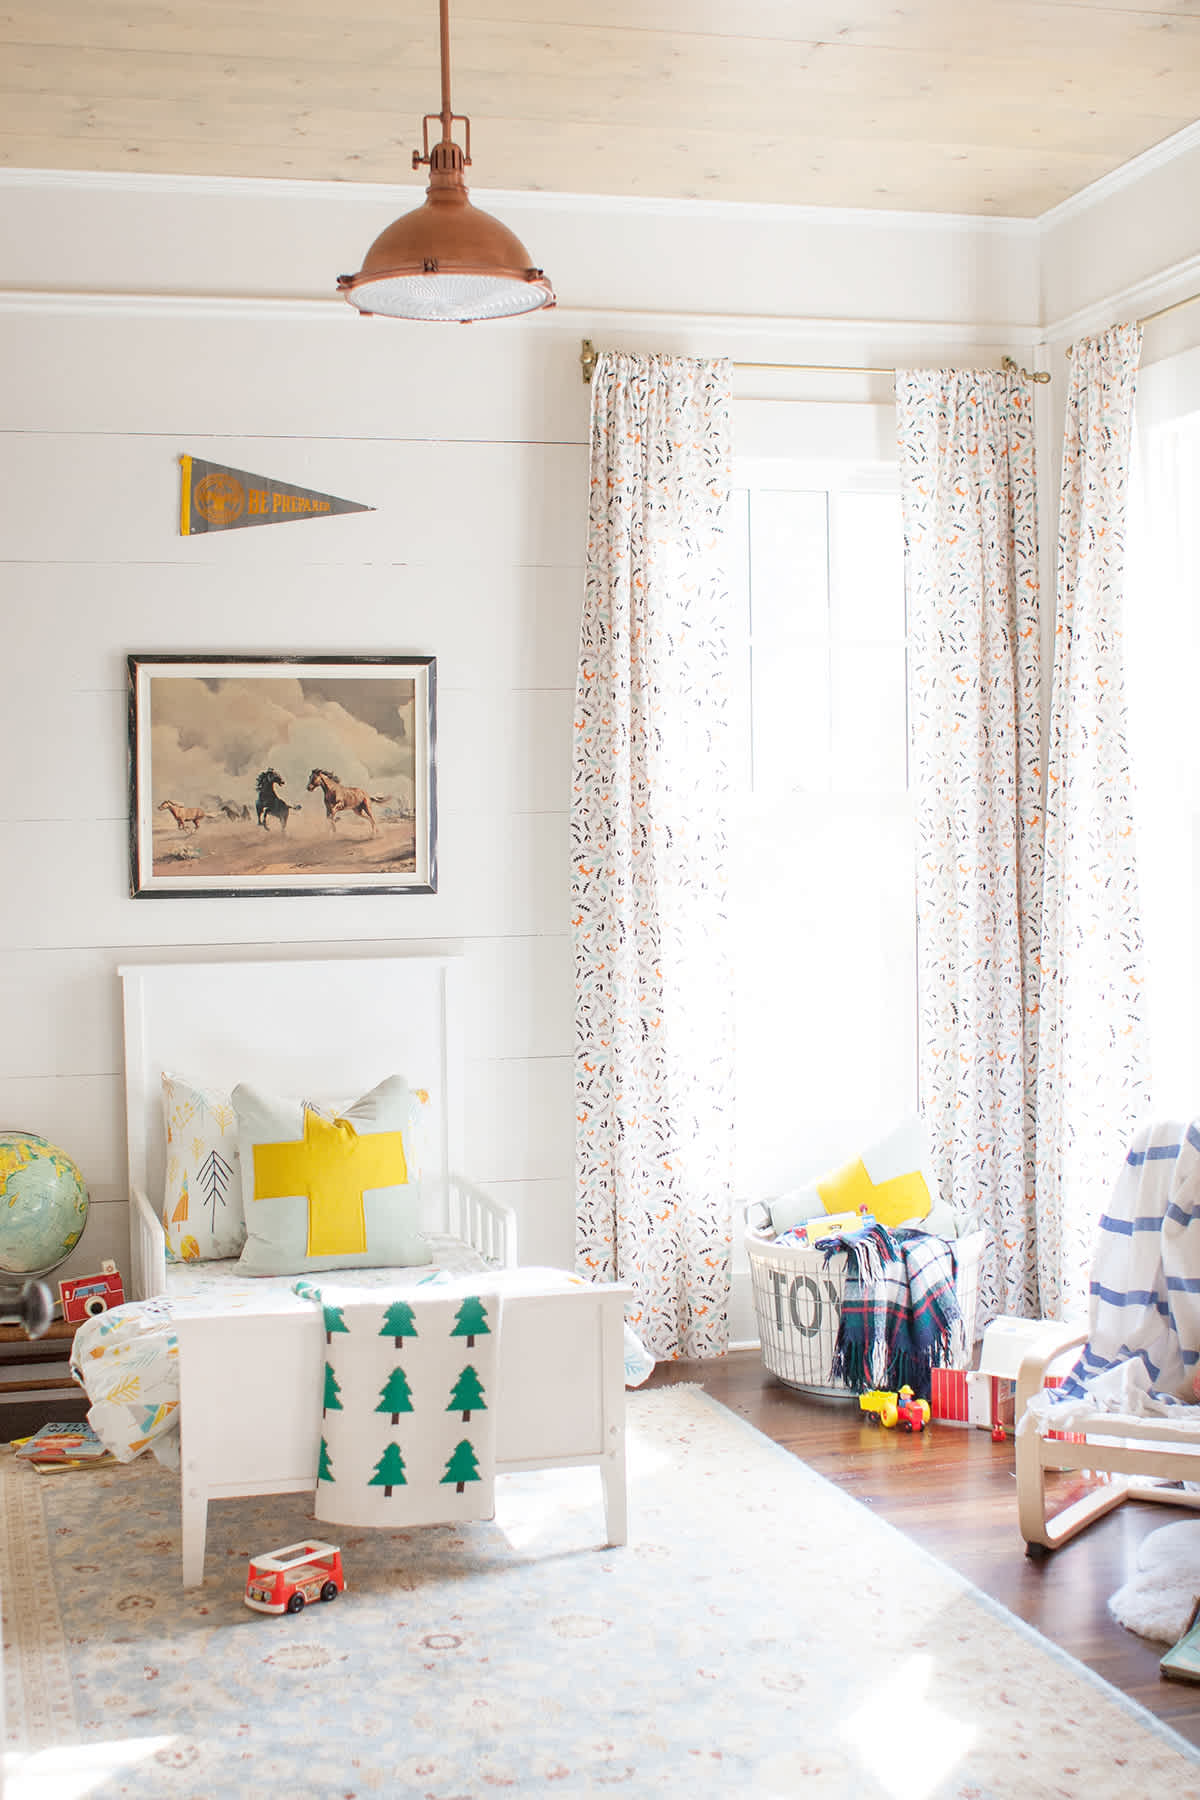 Bright And Rustic Little Boy Room - Lay Baby Lay